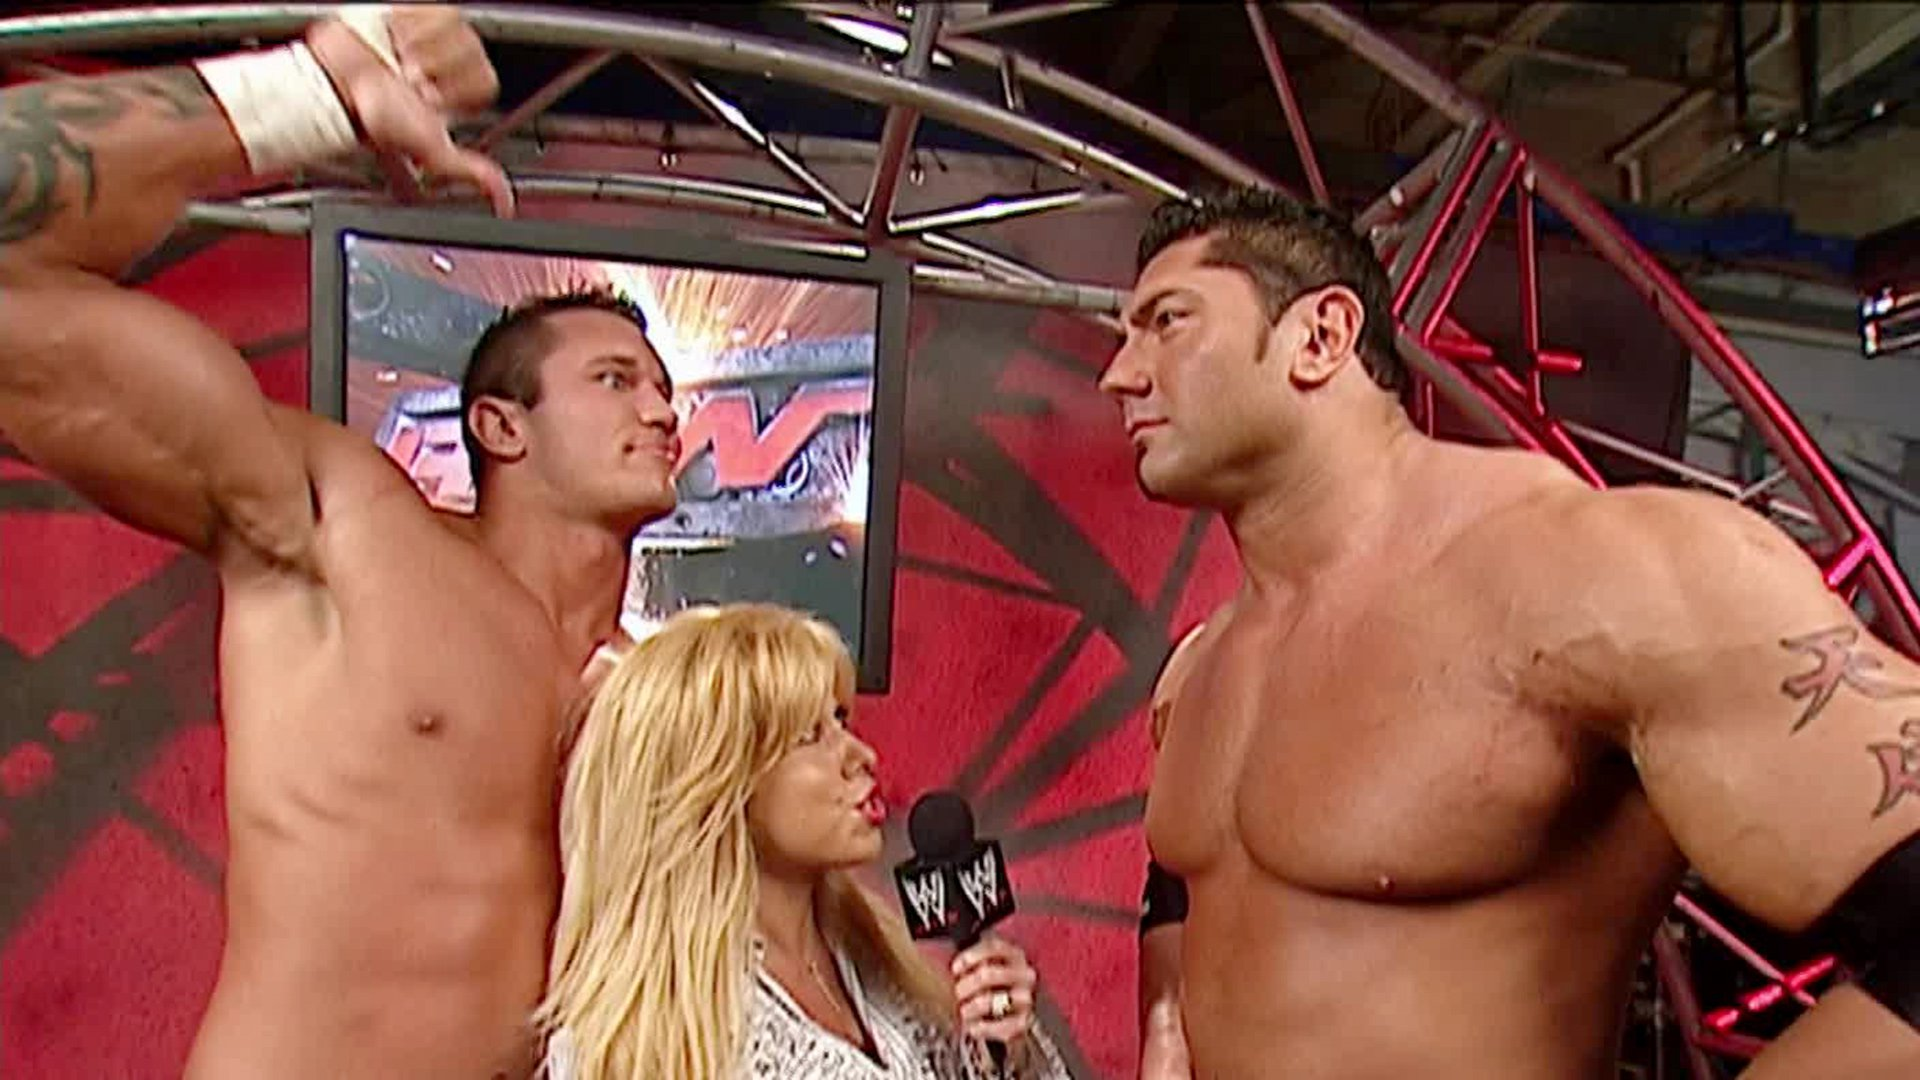 Randy Orton acts goofy in a backstage interview: Raw, Dec. 1, 2003